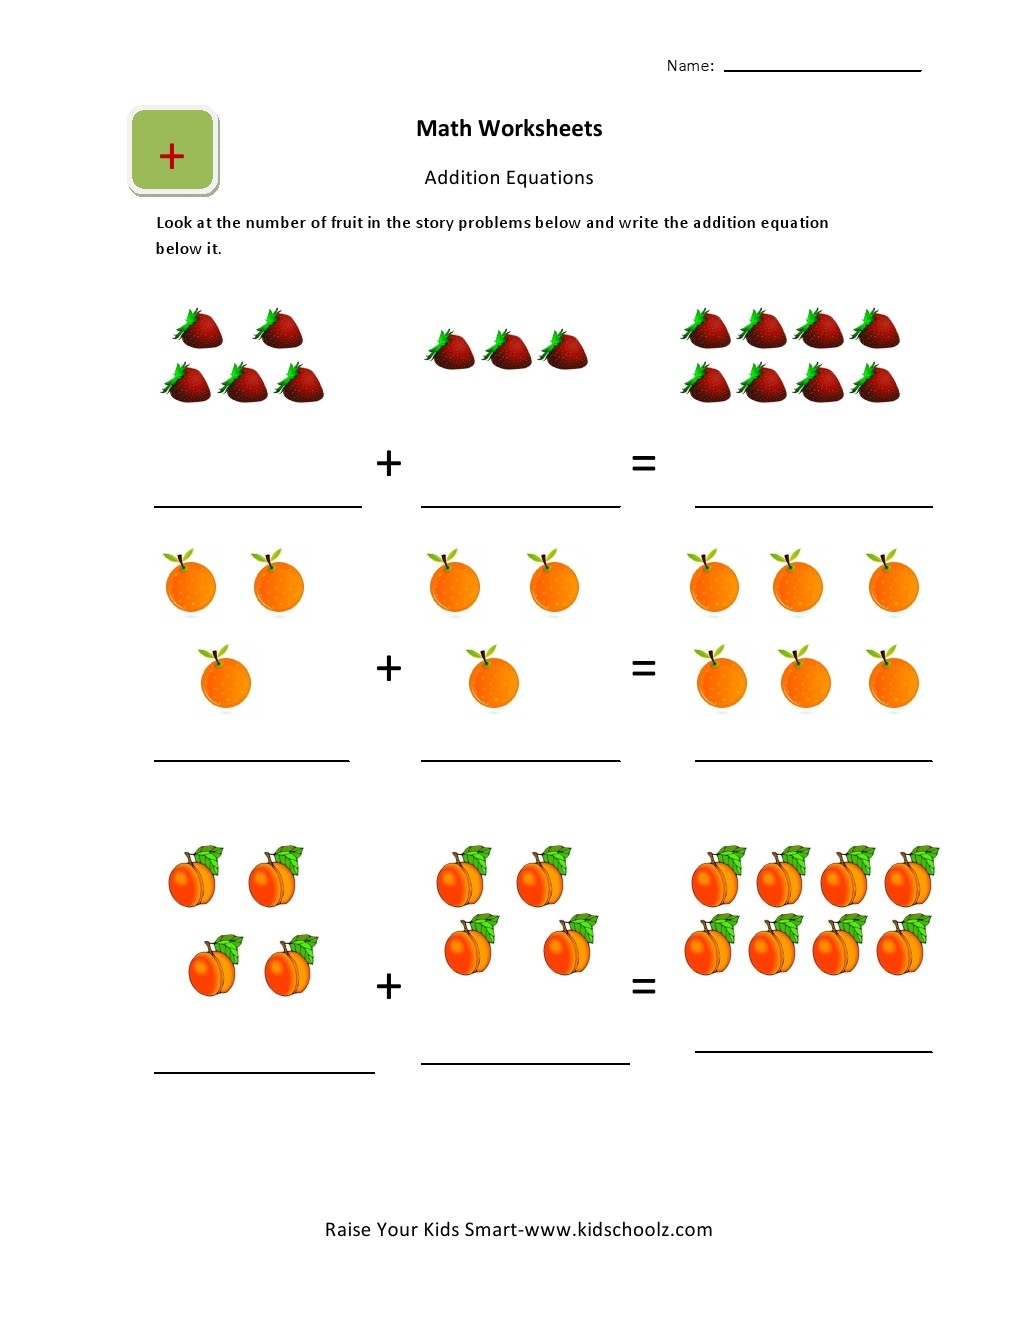 math worksheet : ukg basic picture addition worksheets for kids  : Kids Addition Worksheets